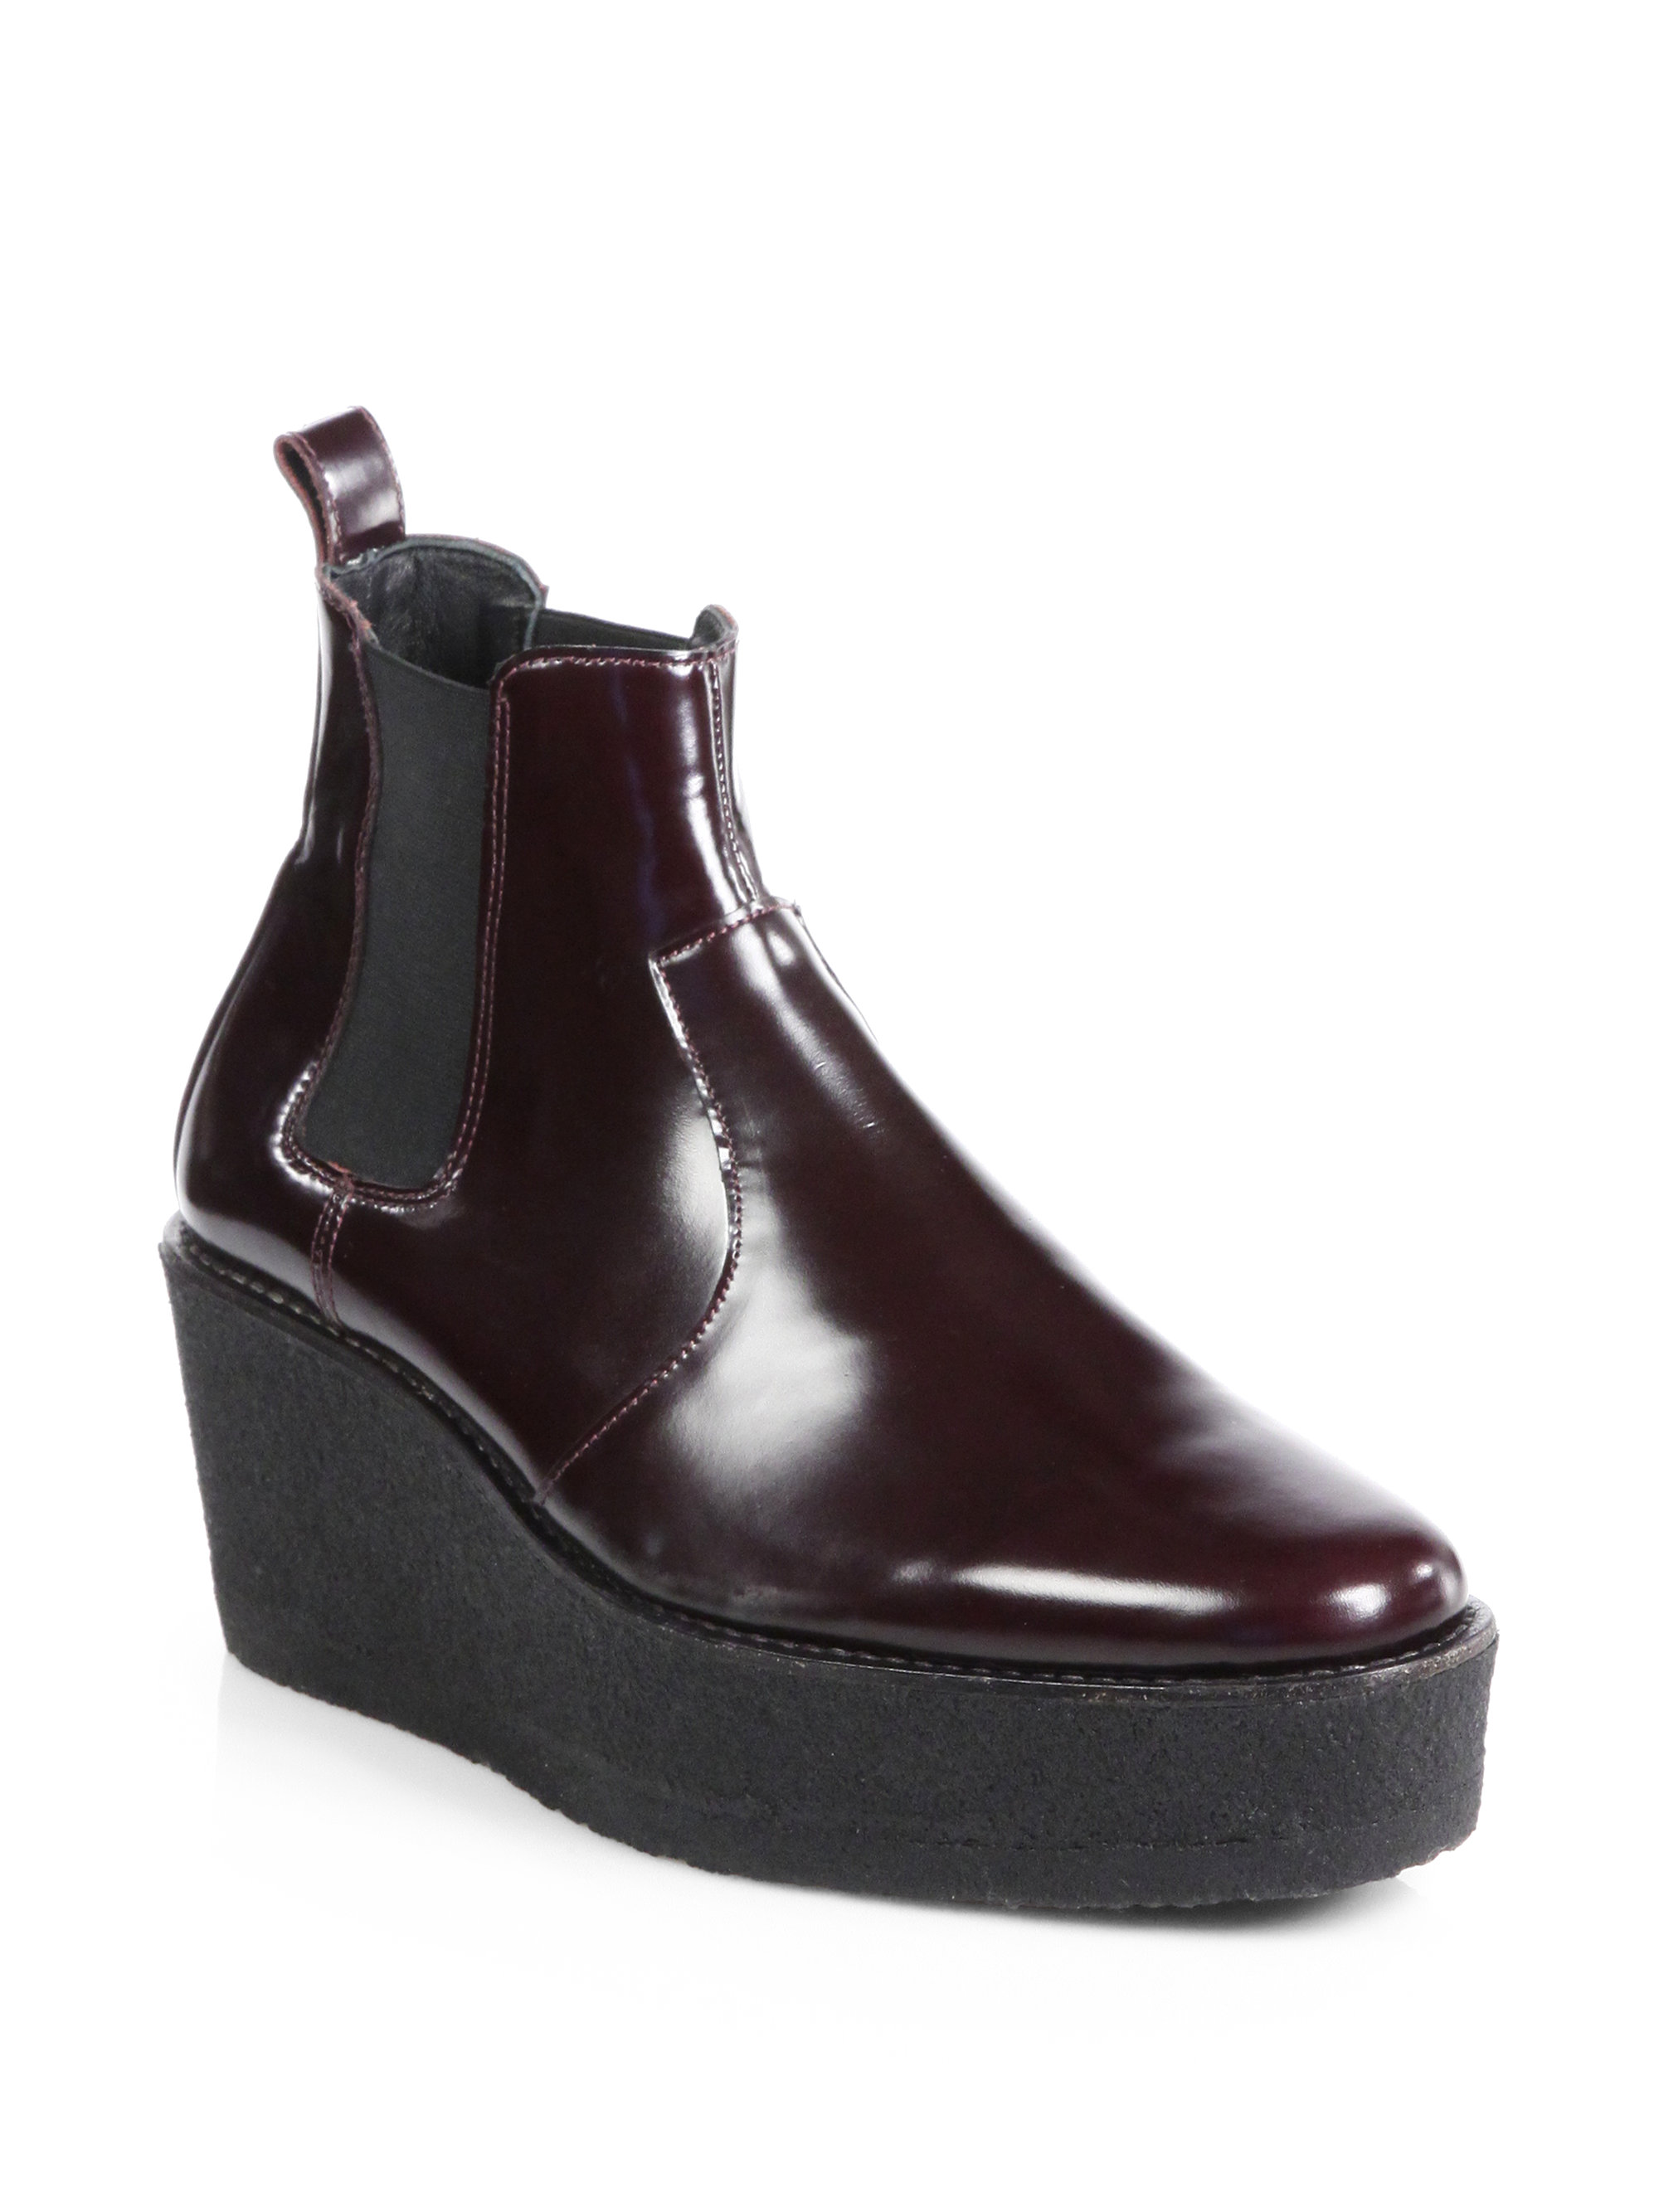 discount order Pierre Hardy Leather Wedge Boots sneakernews for sale free shipping new 5g1AzE